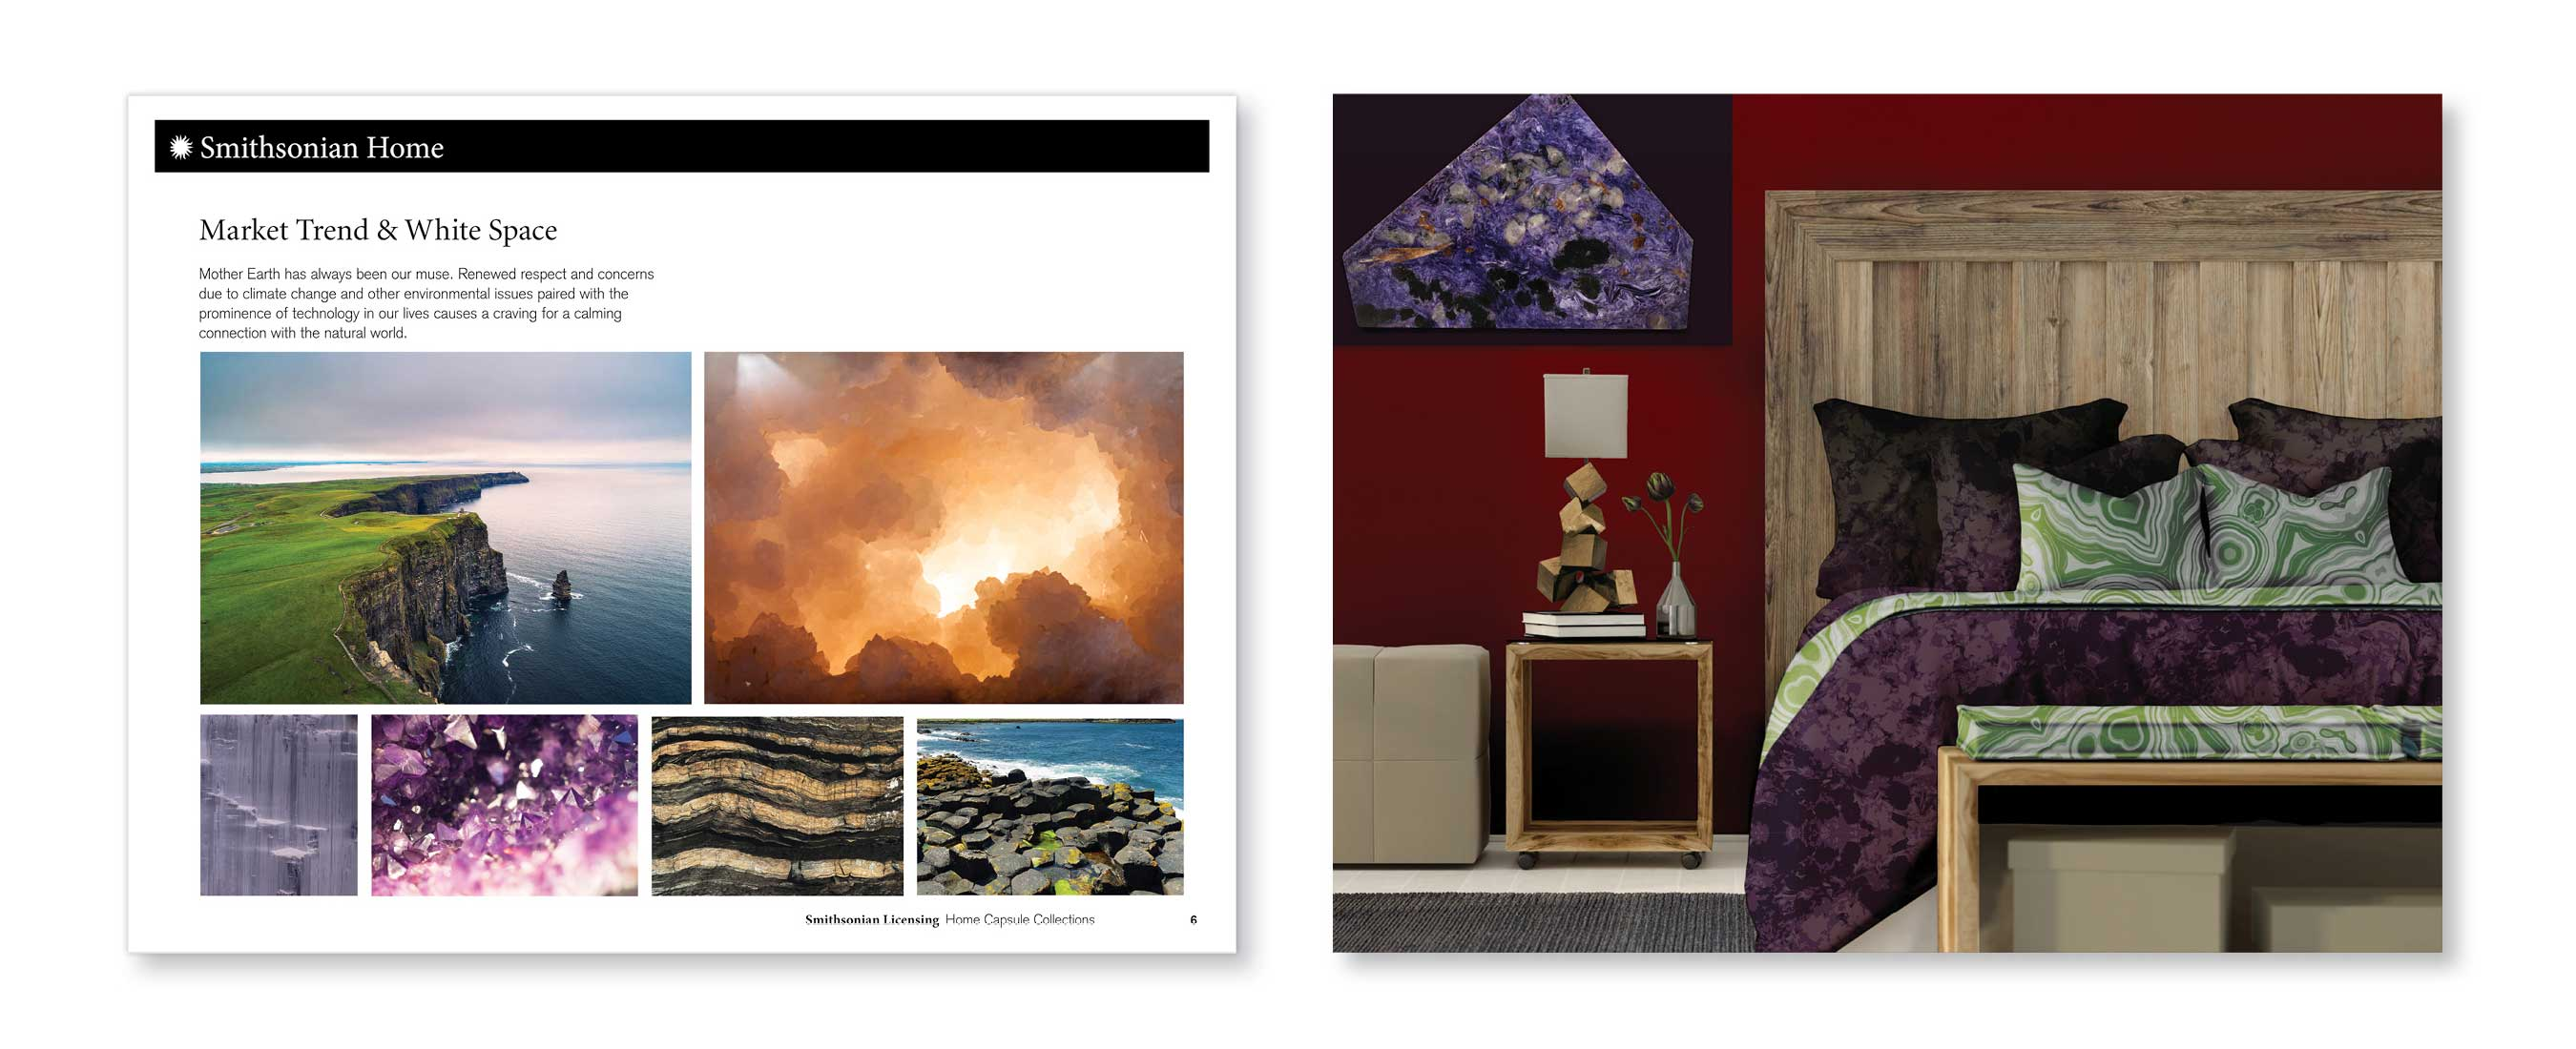 Smithsonian home capsule collection shown: Natural Elements: Gems & Minerals